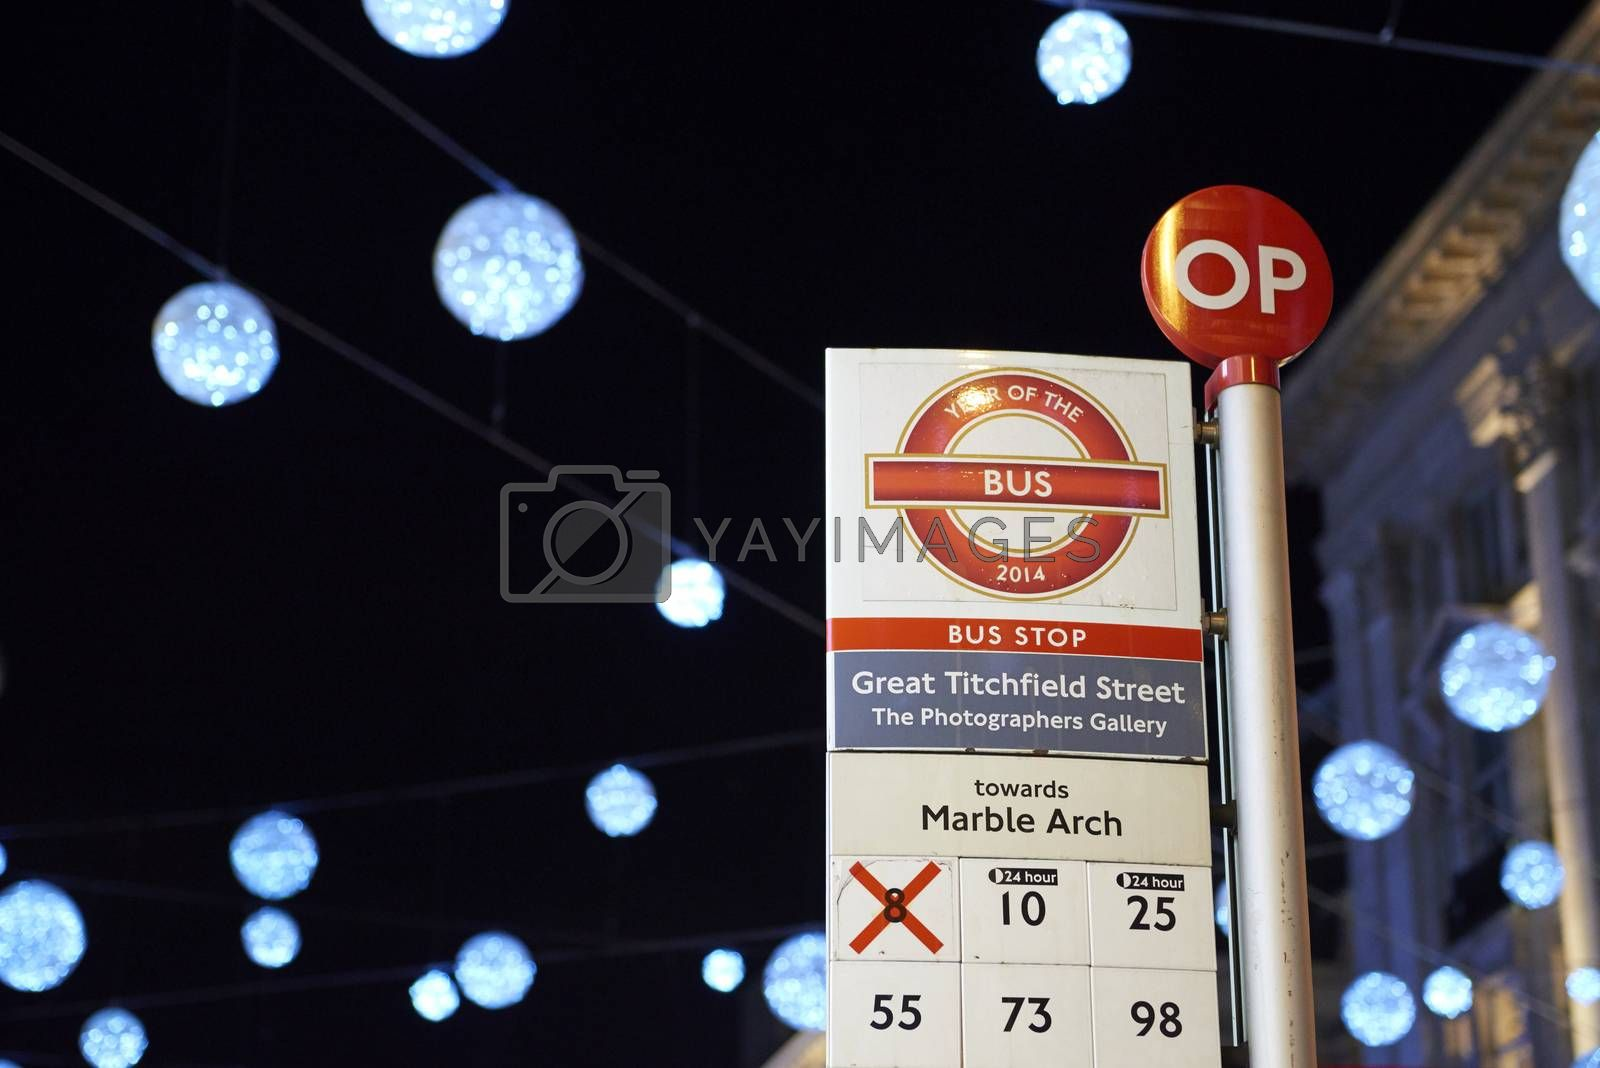 LONDON, UK - DECEMBER 20: Nighttime shot of London bus stop with Christmas lights in the background. December 20, 2014 in London.